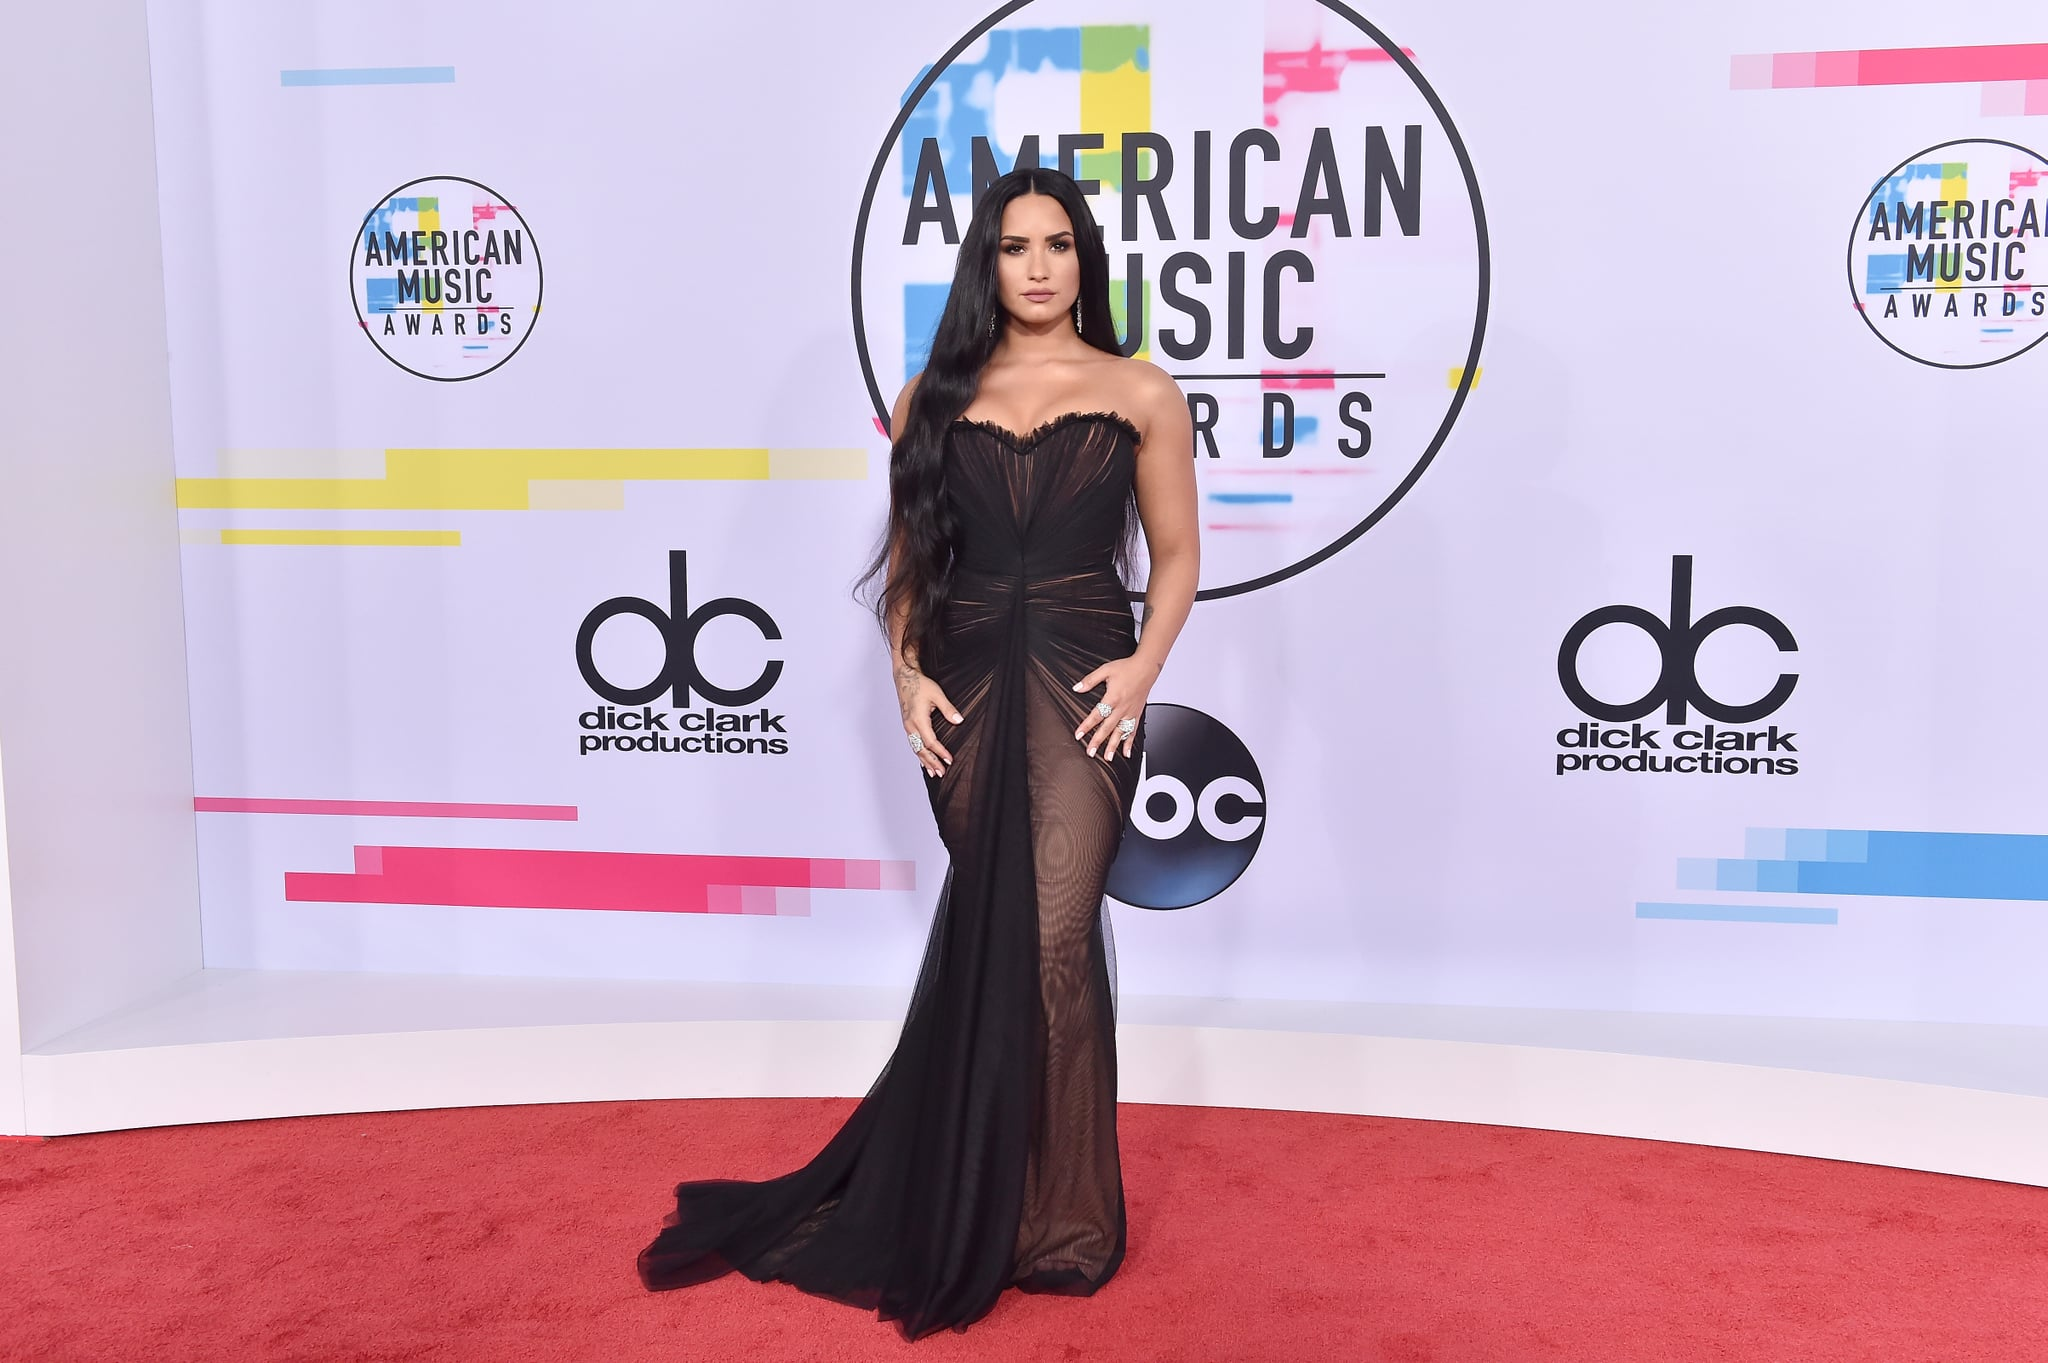 LOS ANGELES, CA - NOVEMBER 19:  Singer/songwriter Demi Lovato arrives at the 2017 American Music Awards at Microsoft Theater on November 19, 2017 in Los Angeles, California.  (Photo by Axelle/Bauer-Griffin/FilmMagic)